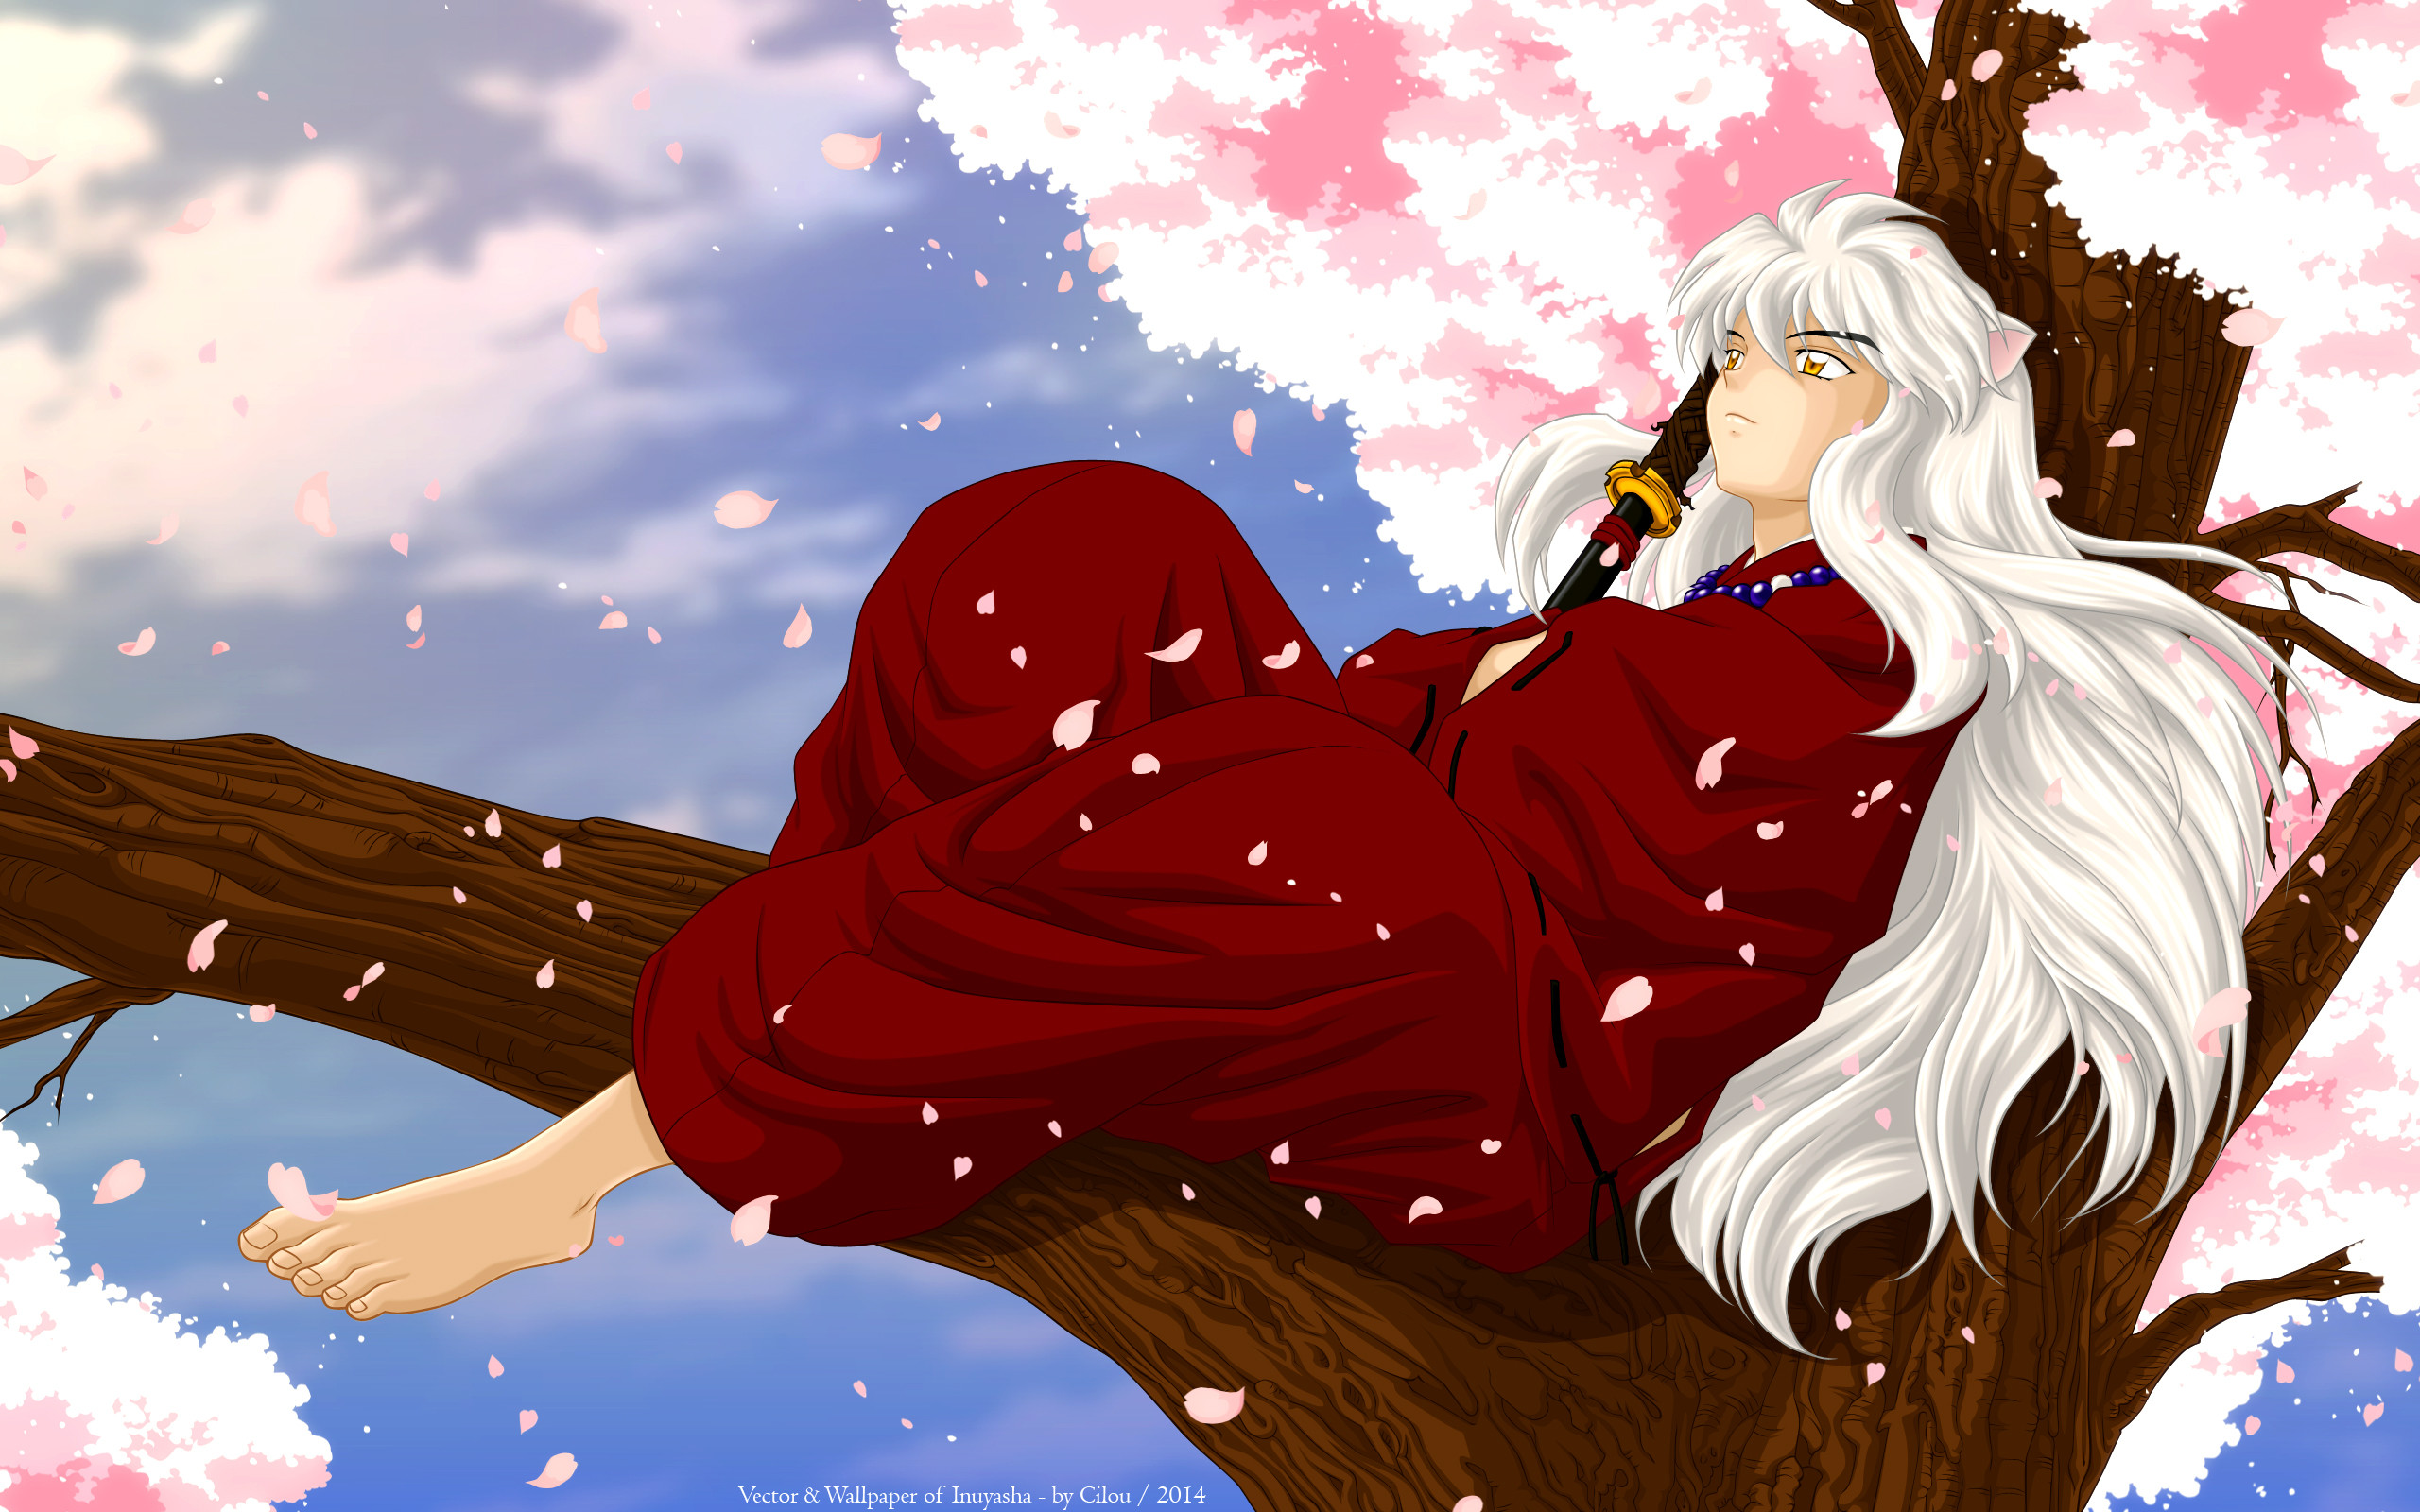 2560x1600 InuYasha HD Wallpaper | Hintergrund |  | ID:757271 - Wallpaper  Abyss